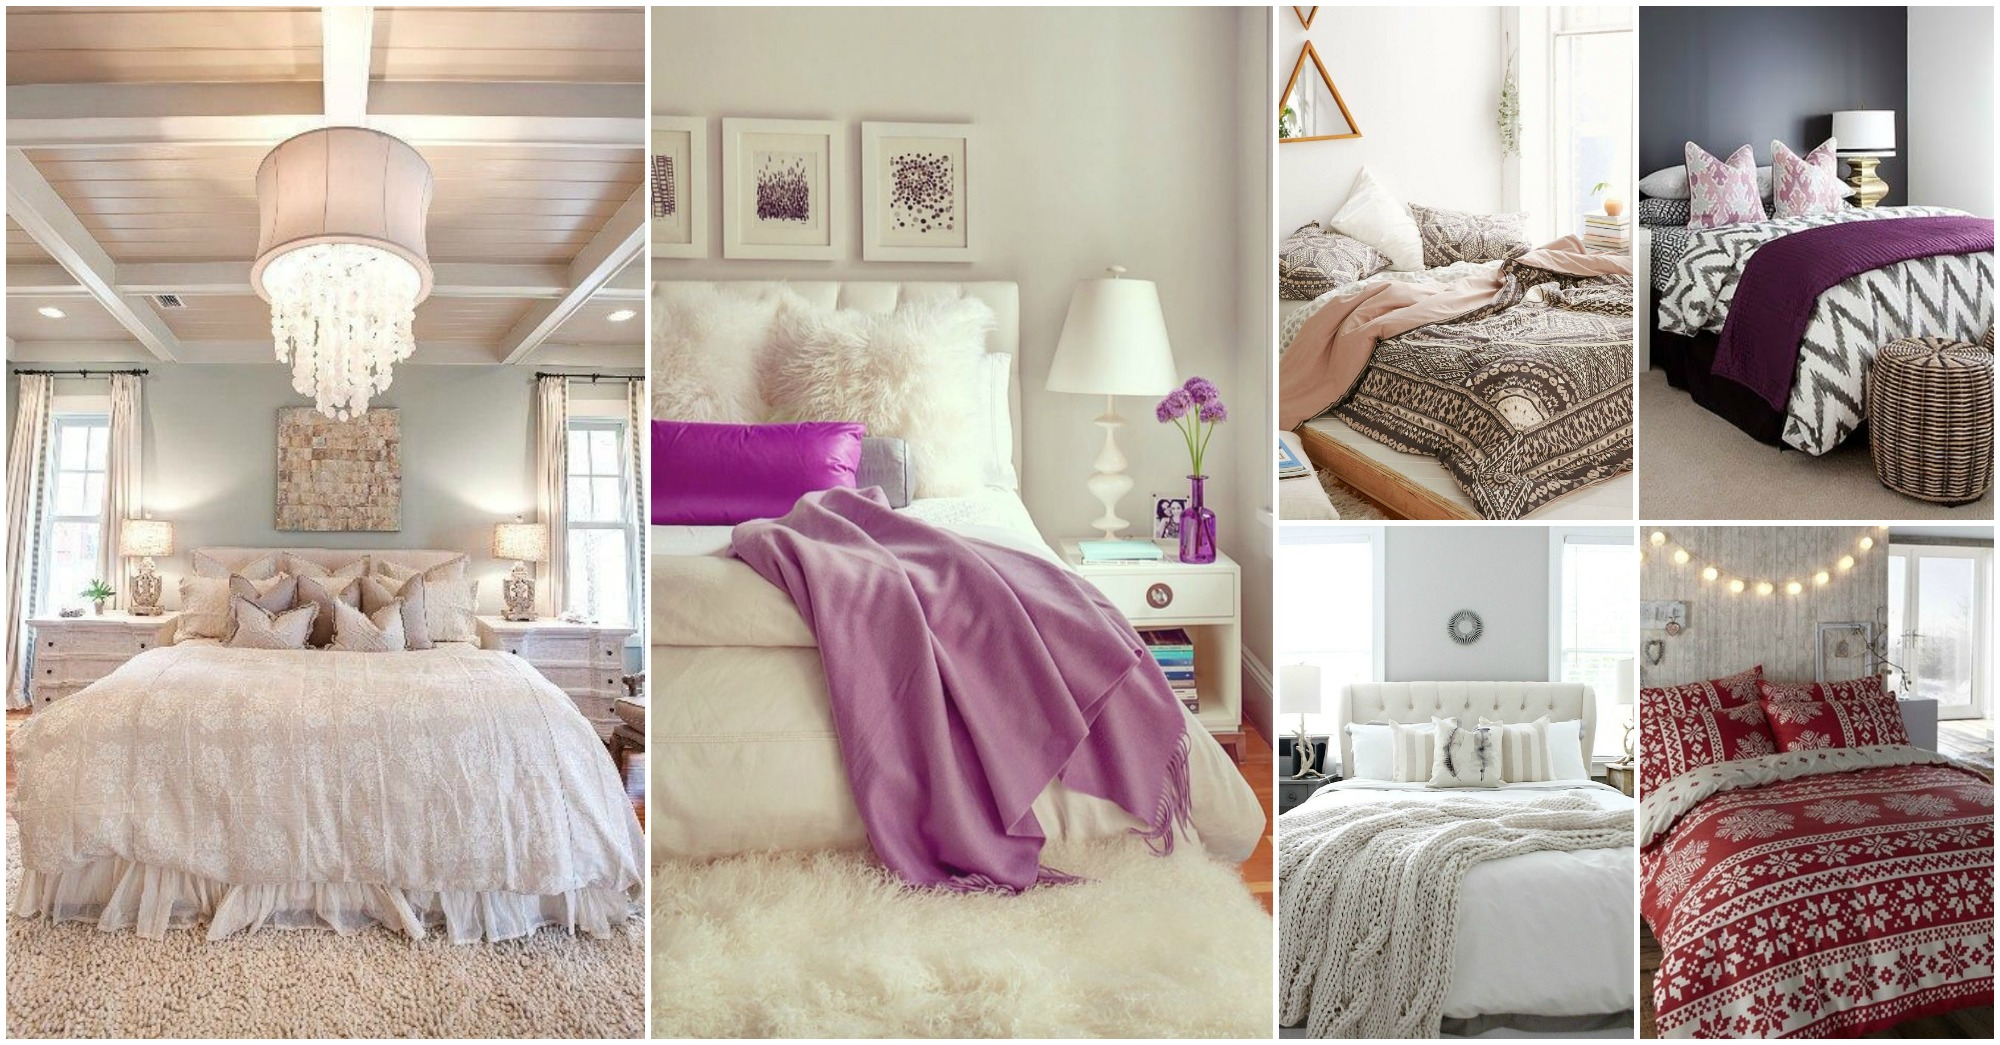 15 + Lovely Bedroom Decor Ideas That Will Steal The Show on Pictures Room Decor  id=33899